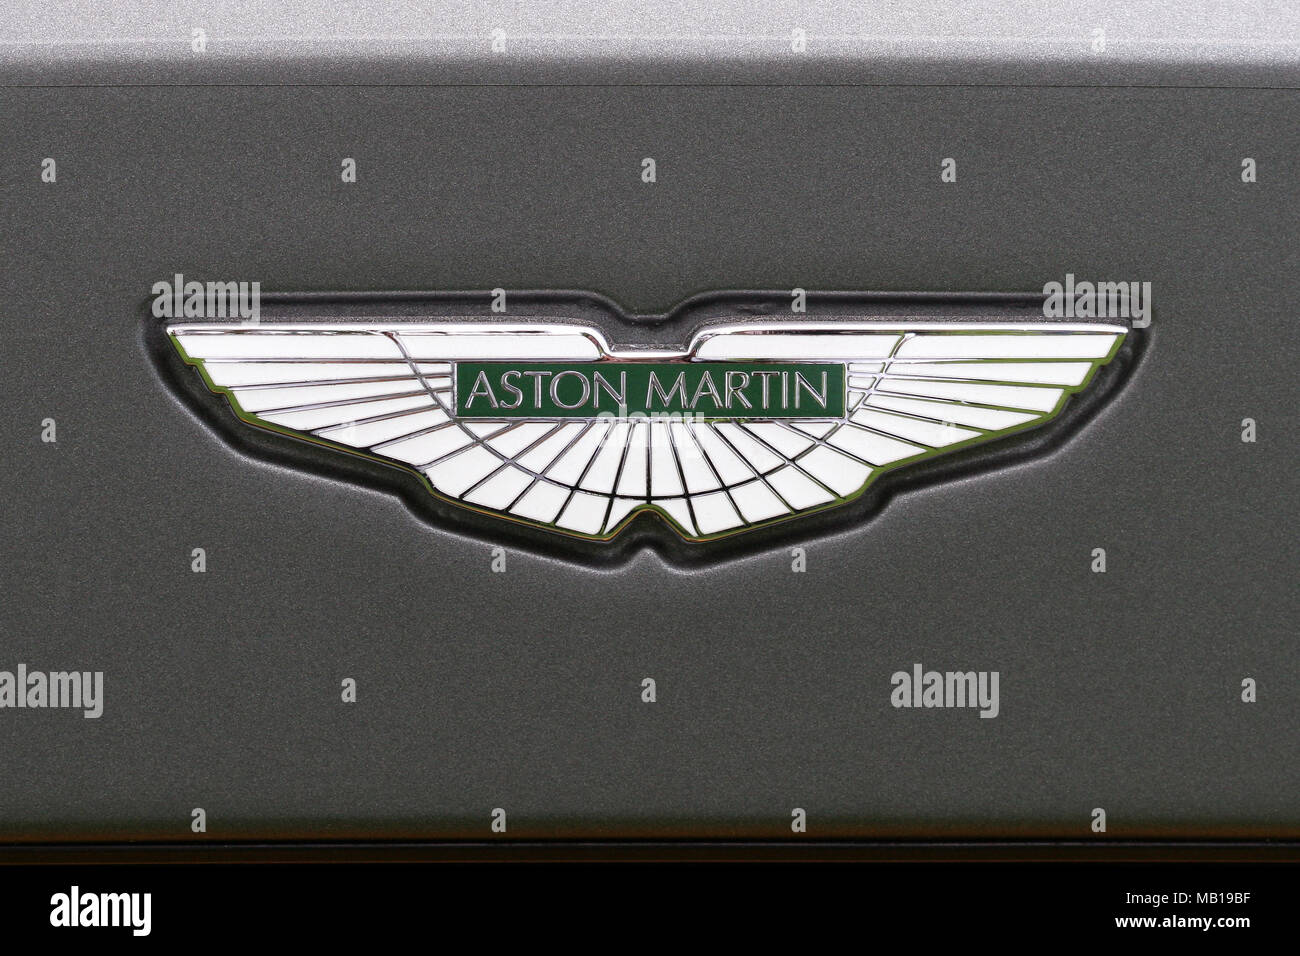 Aston Martin Symbols Stock Photos Aston Martin Symbols Stock